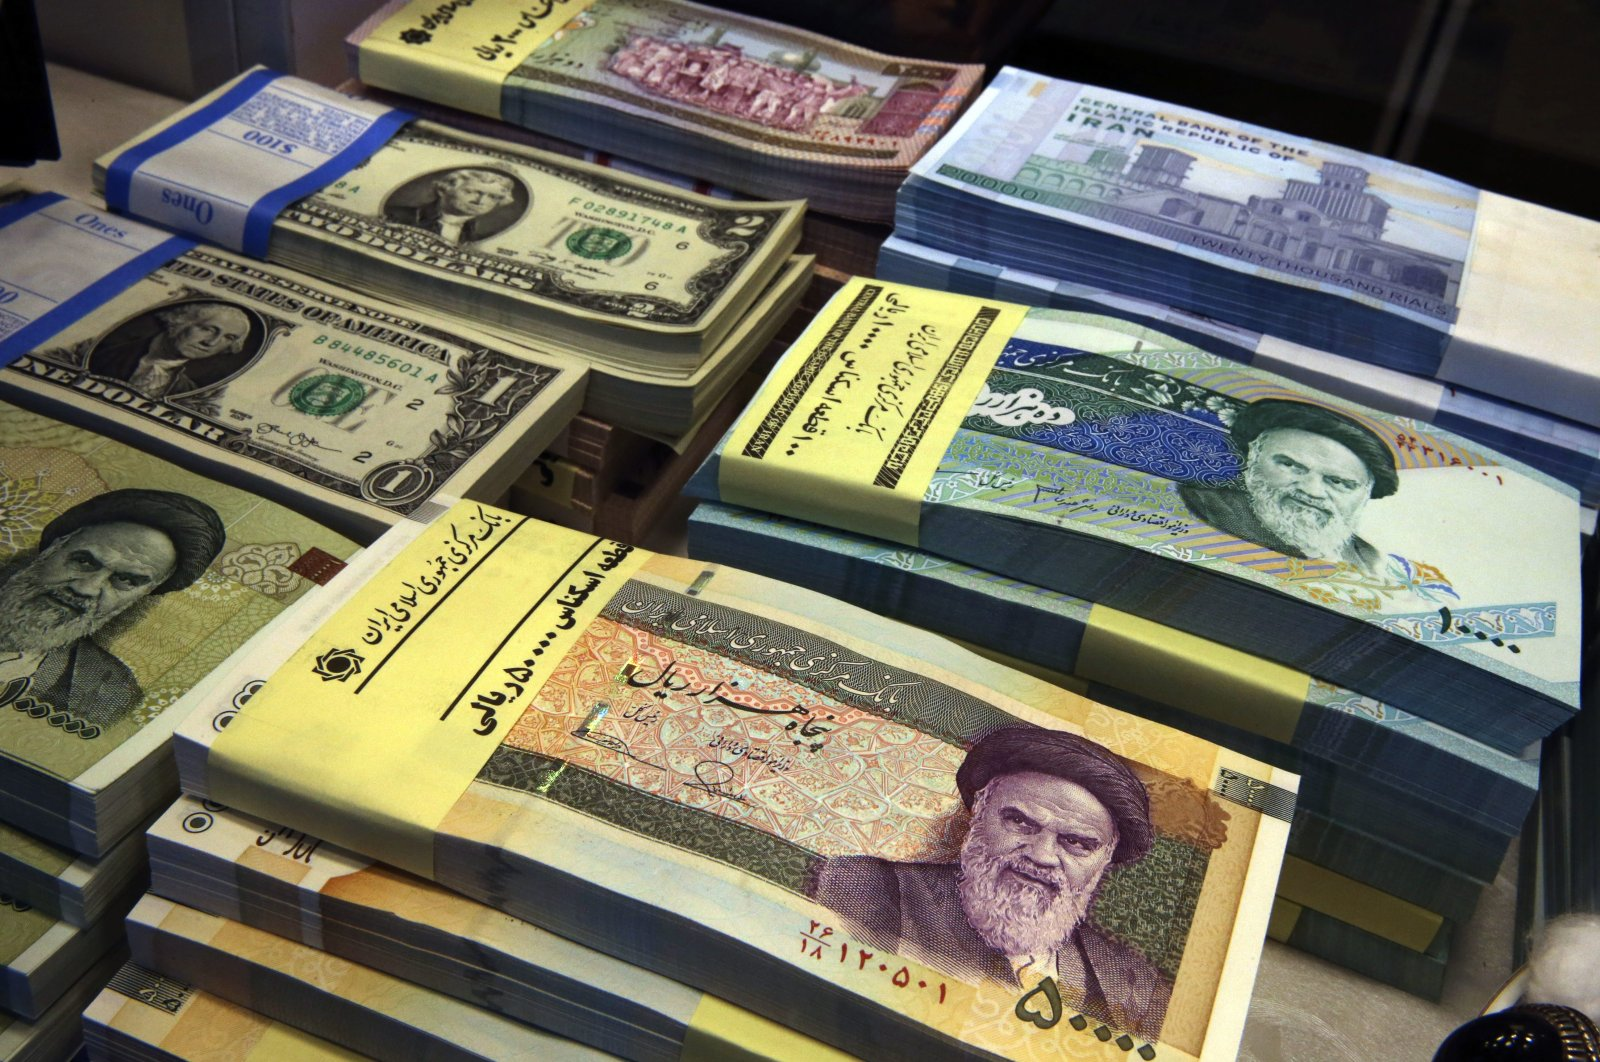 Iranian and U.S. banknotes are on display at a currency exchange shop in downtown Tehran, Iran, April 4, 2015. (AP photo)